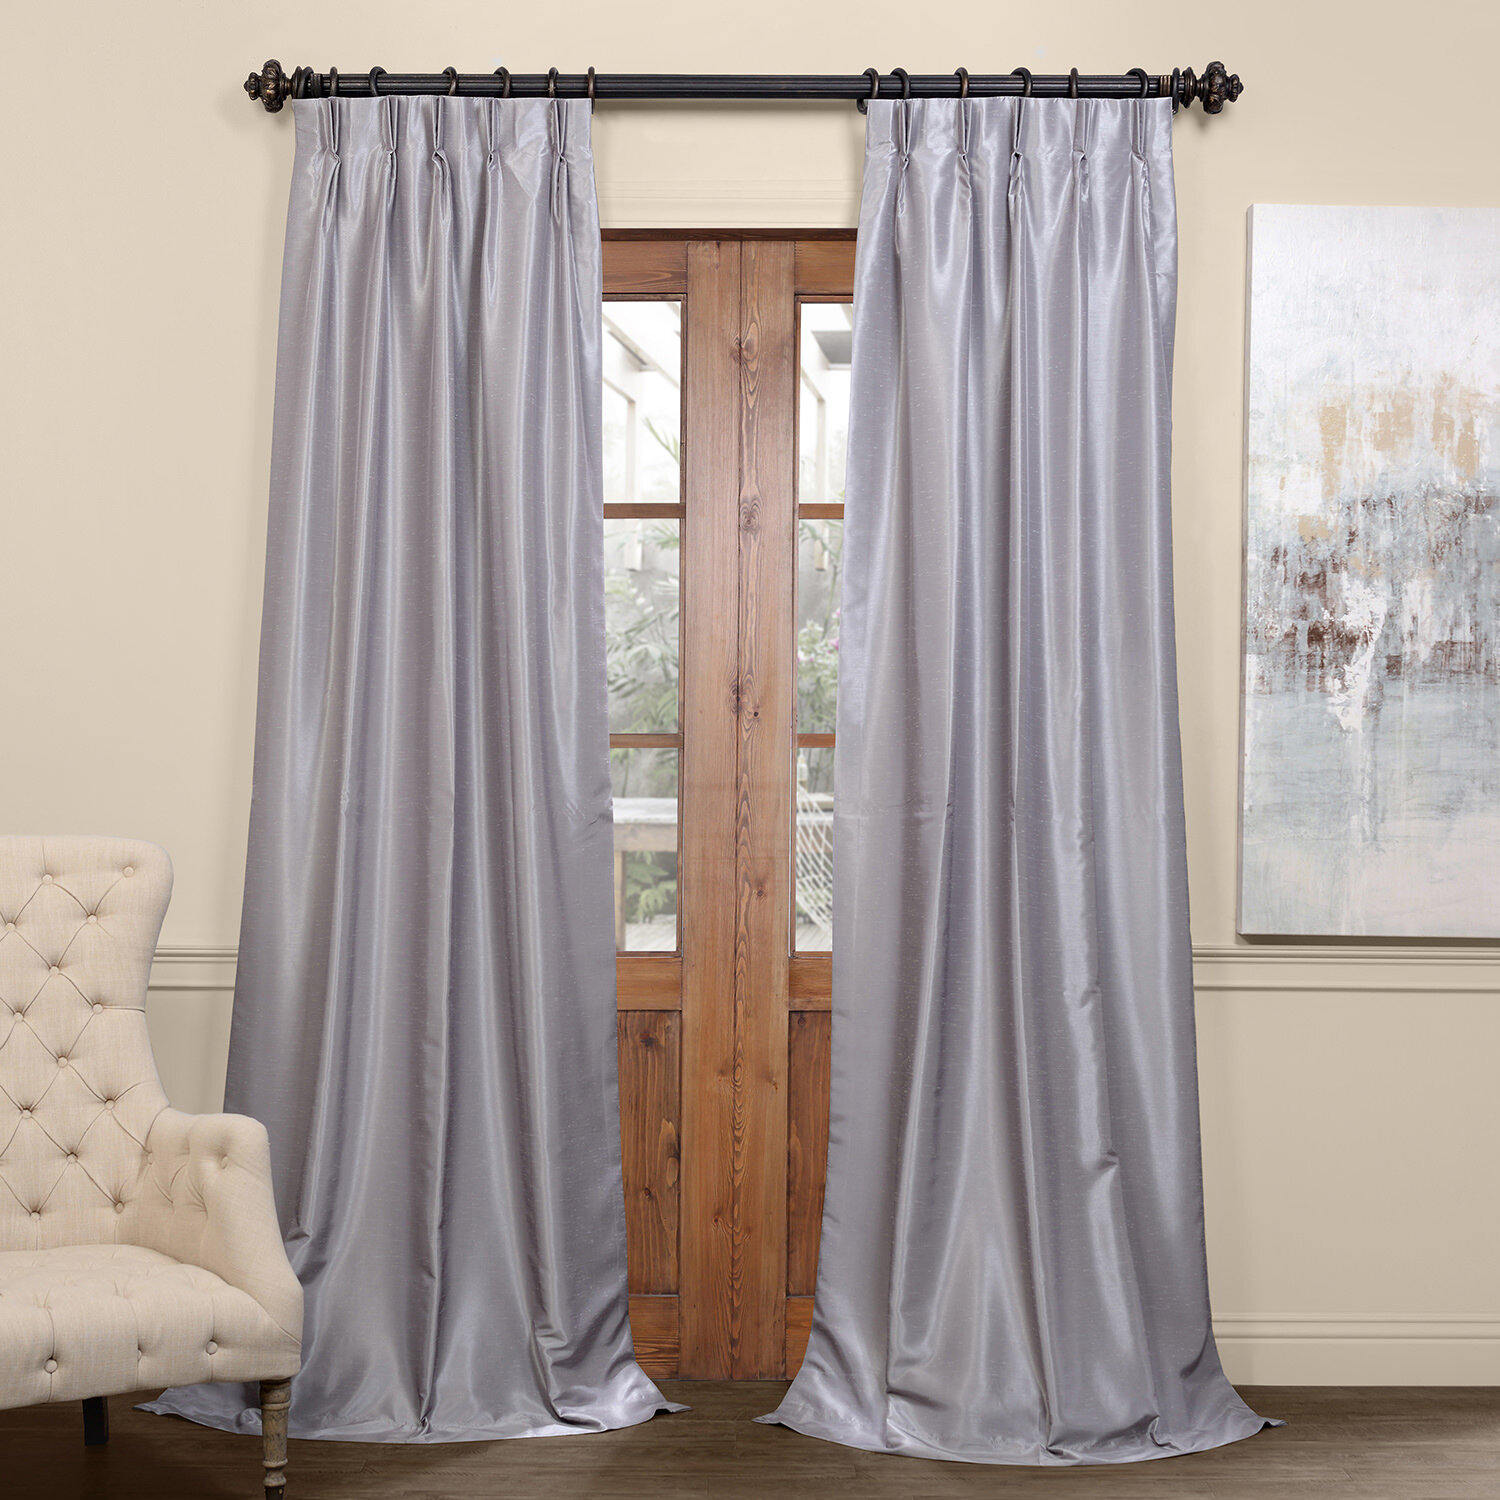 Forbell Solid Blackout Vintage Textured Faux Dupioni Thermal Pinch Pleat Single Curtain Panel In Storm Grey Vintage Faux Textured Dupioni Single Silk Curtain Panels (View 21 of 30)